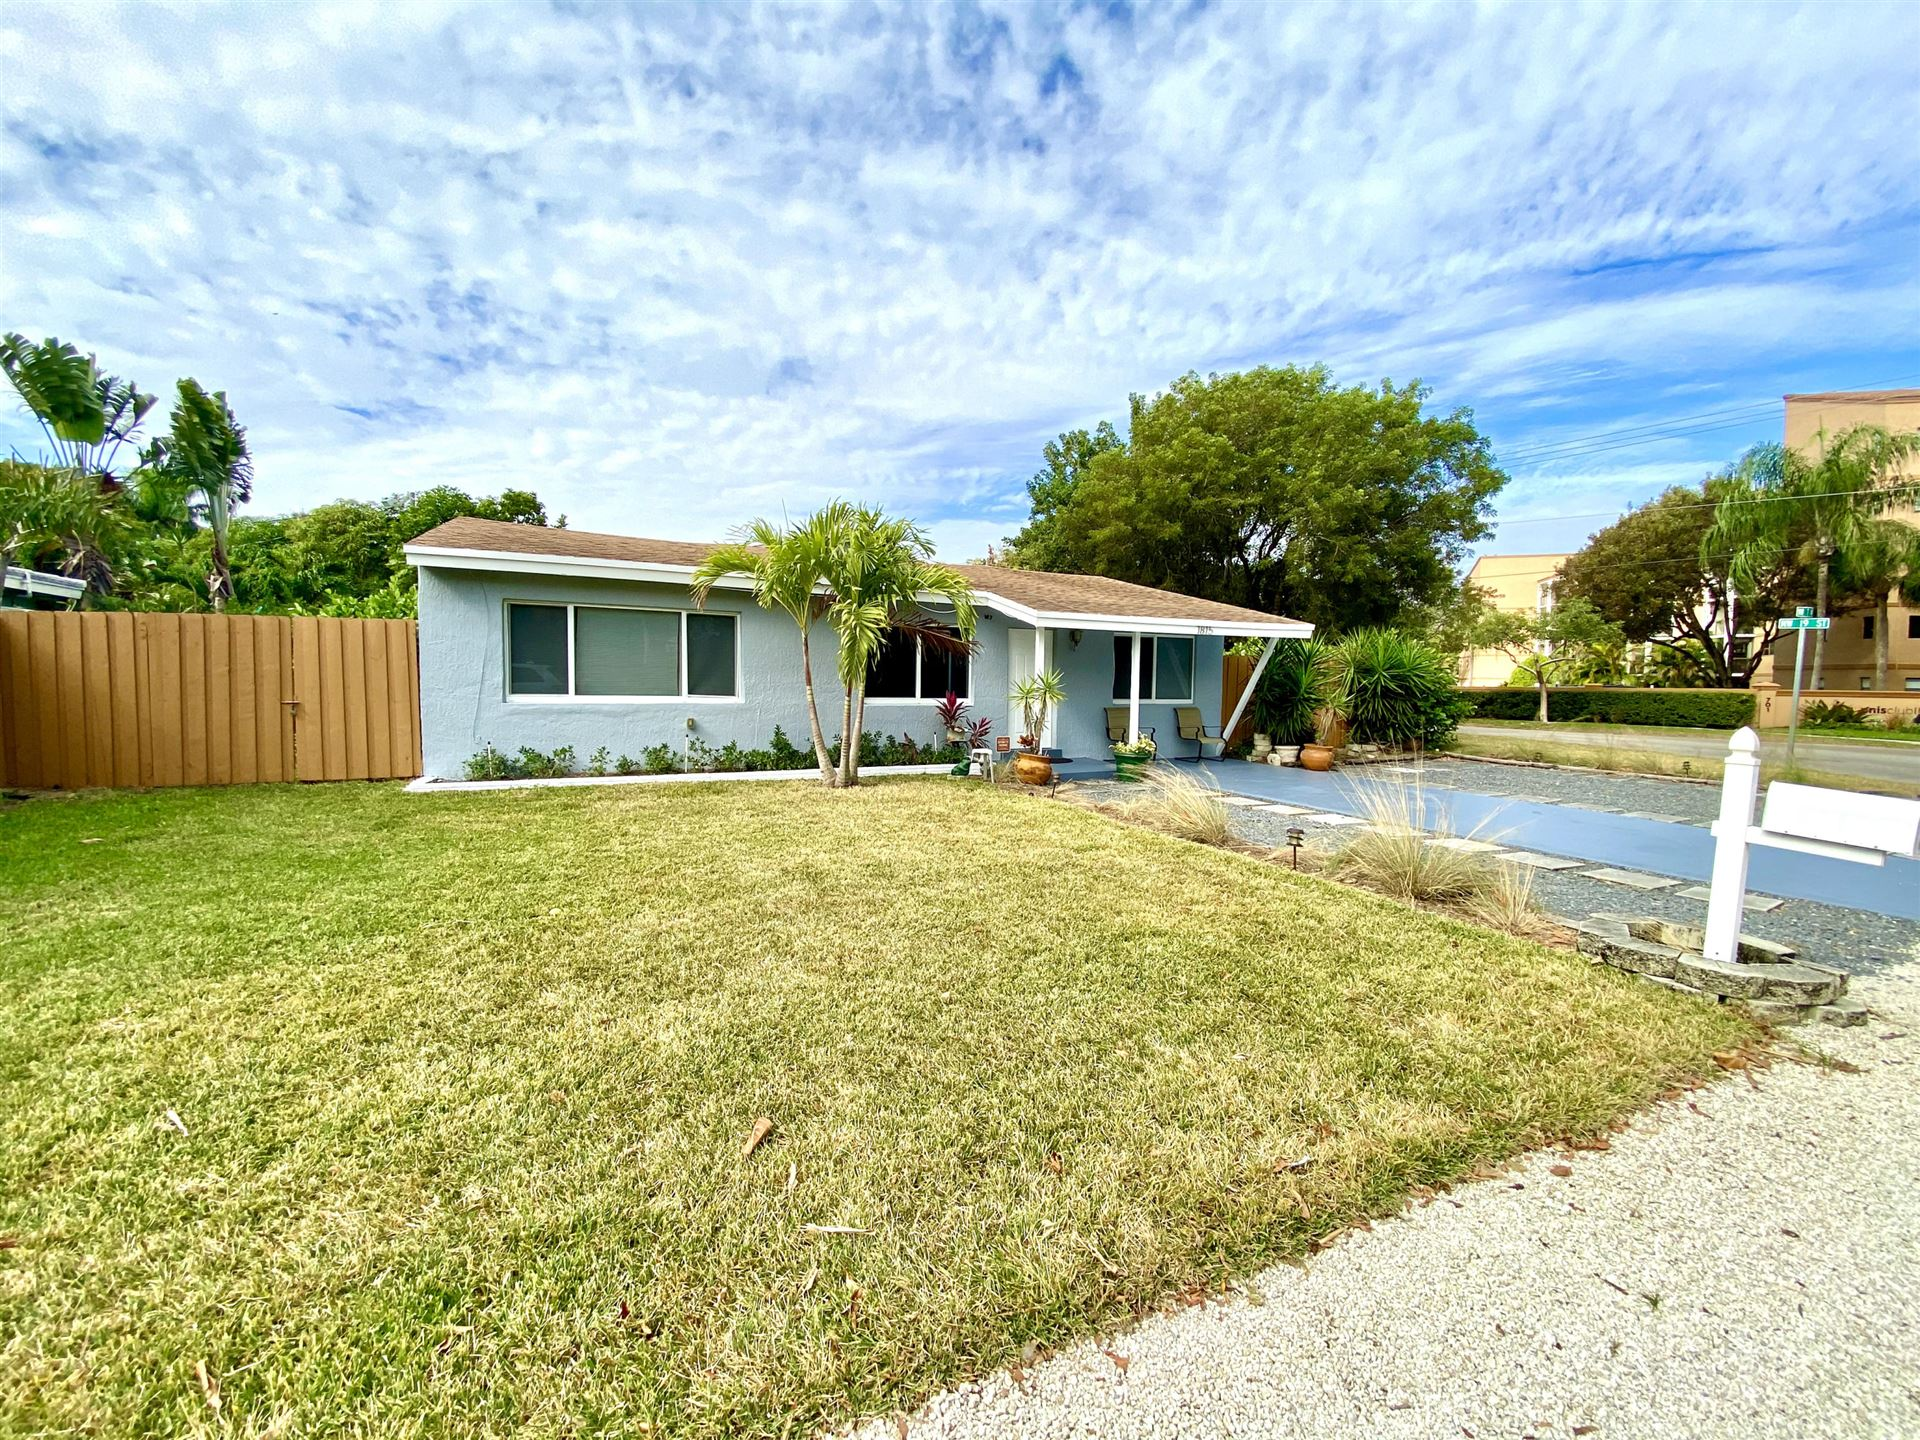 1815 NW 7th Avenue, Fort Lauderdale, FL 33311 - #: RX-10683182